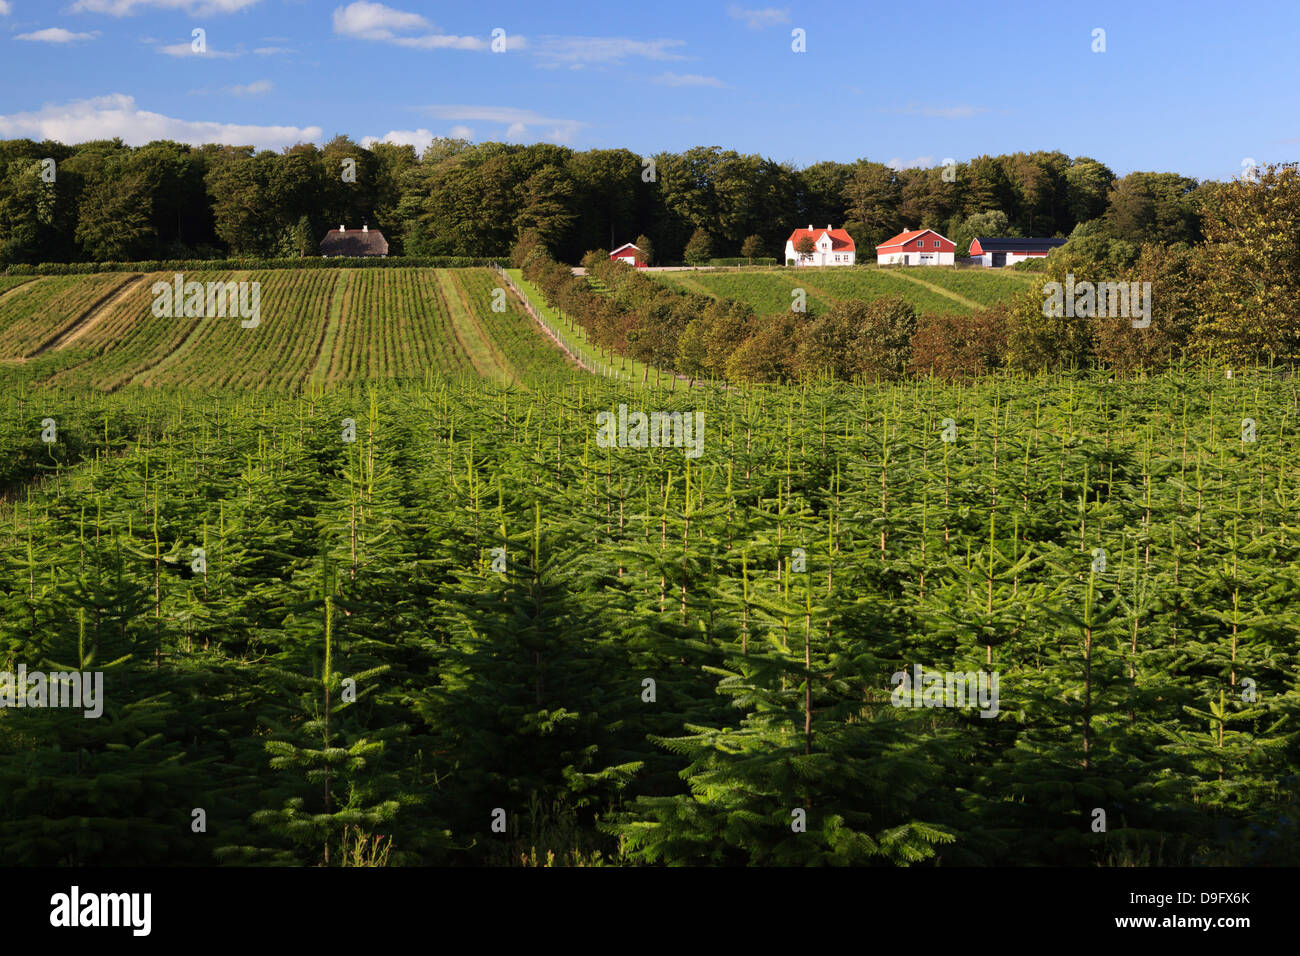 Norway spruce (Christmas tree) plantation, Ry, Lake District, Jutland, Denmark, Scandinavia - Stock Image